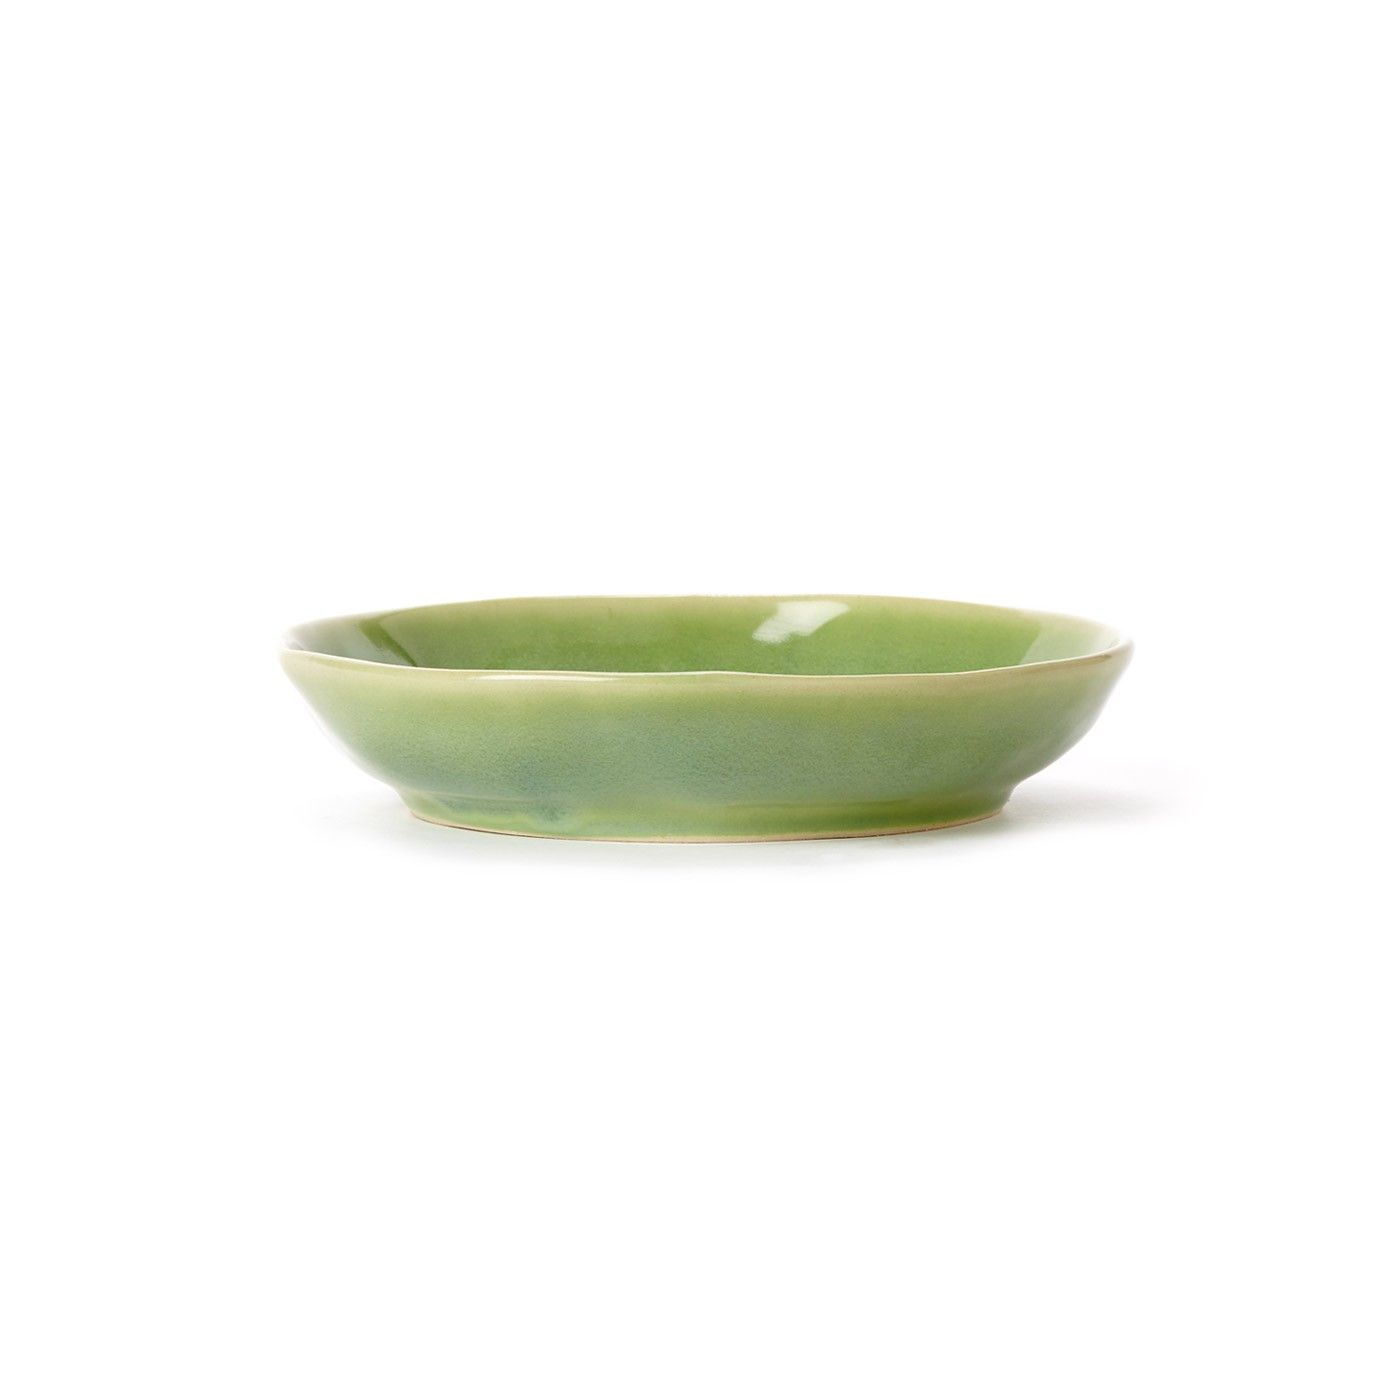 The Forma Leaf Pasta Bowl is made from the strongest Italian stoneware, and its ample, handformed shape make it a charming piece on your table. The fresh green hue looks beautiful both on its own or mixed with other Forma shades or dinnerware collections.